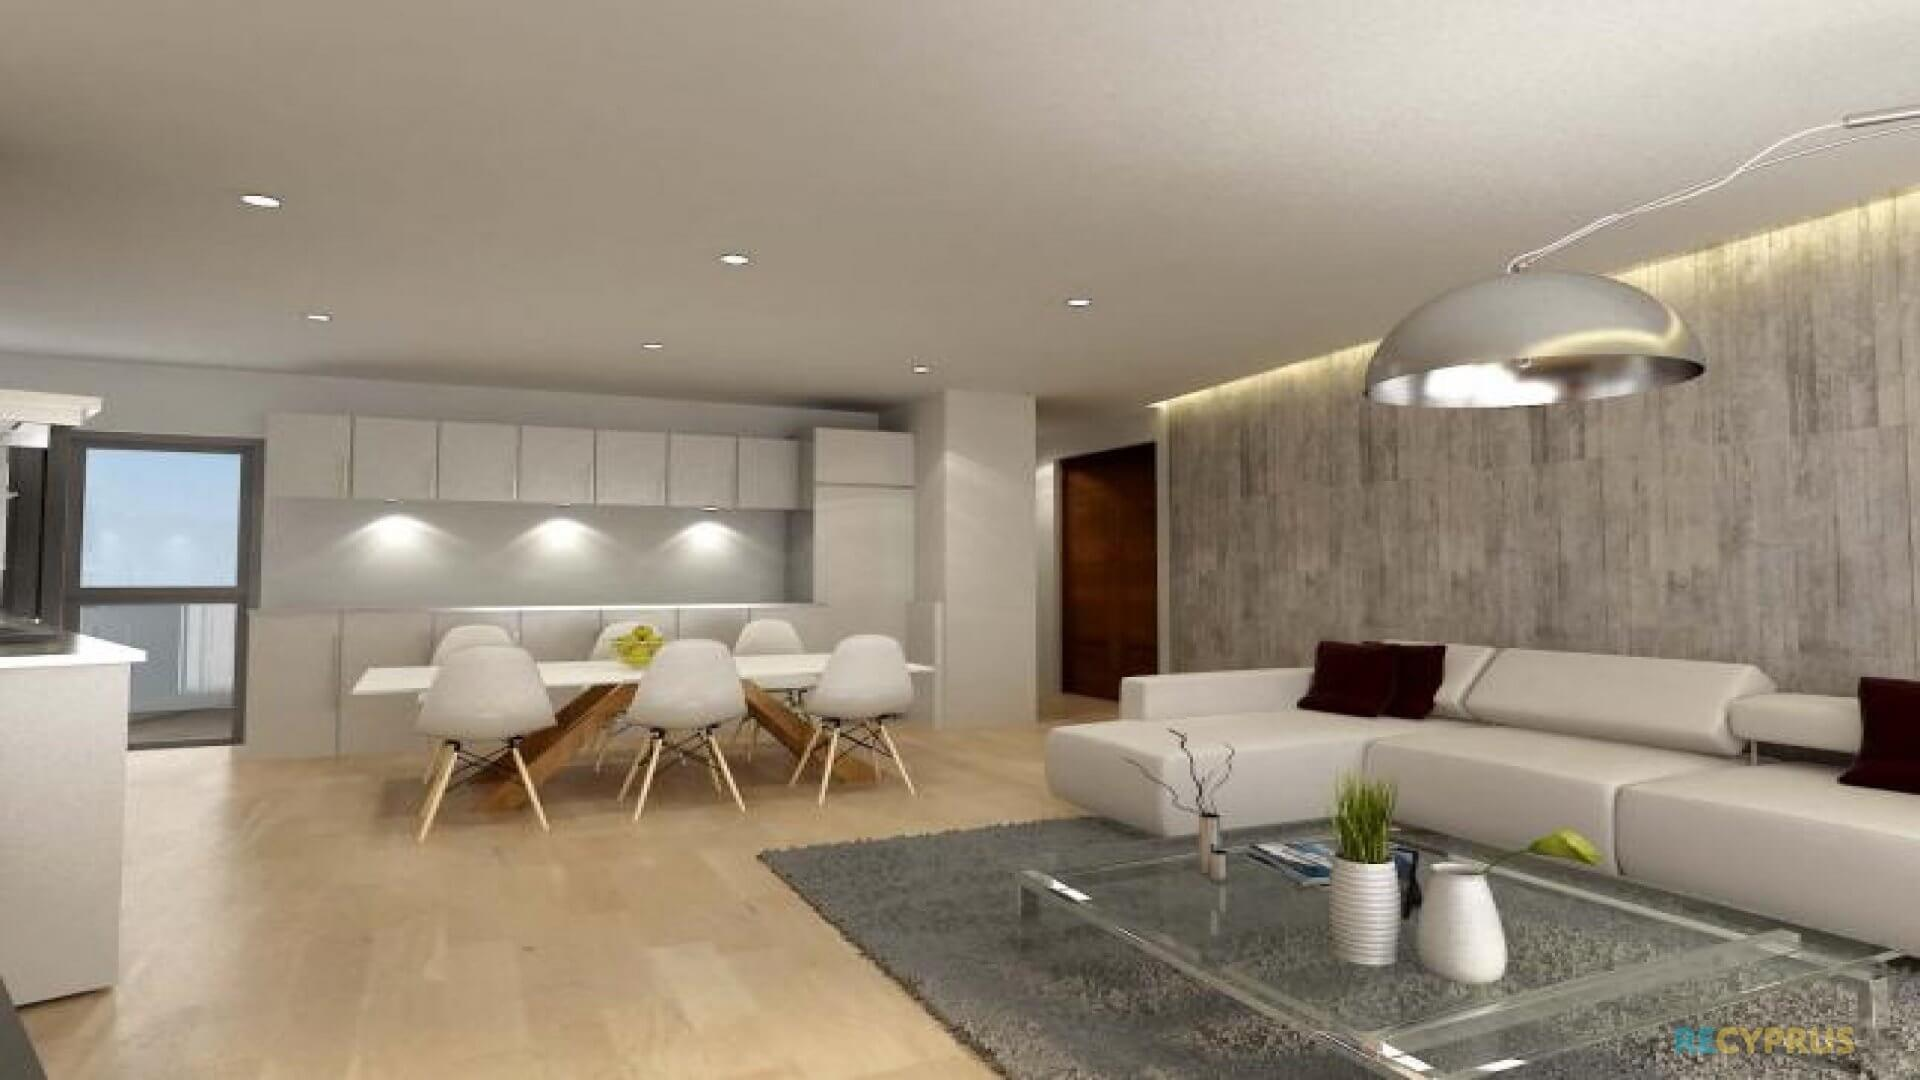 Apartment for sale City Center Larnaca Cyprus 1 3581